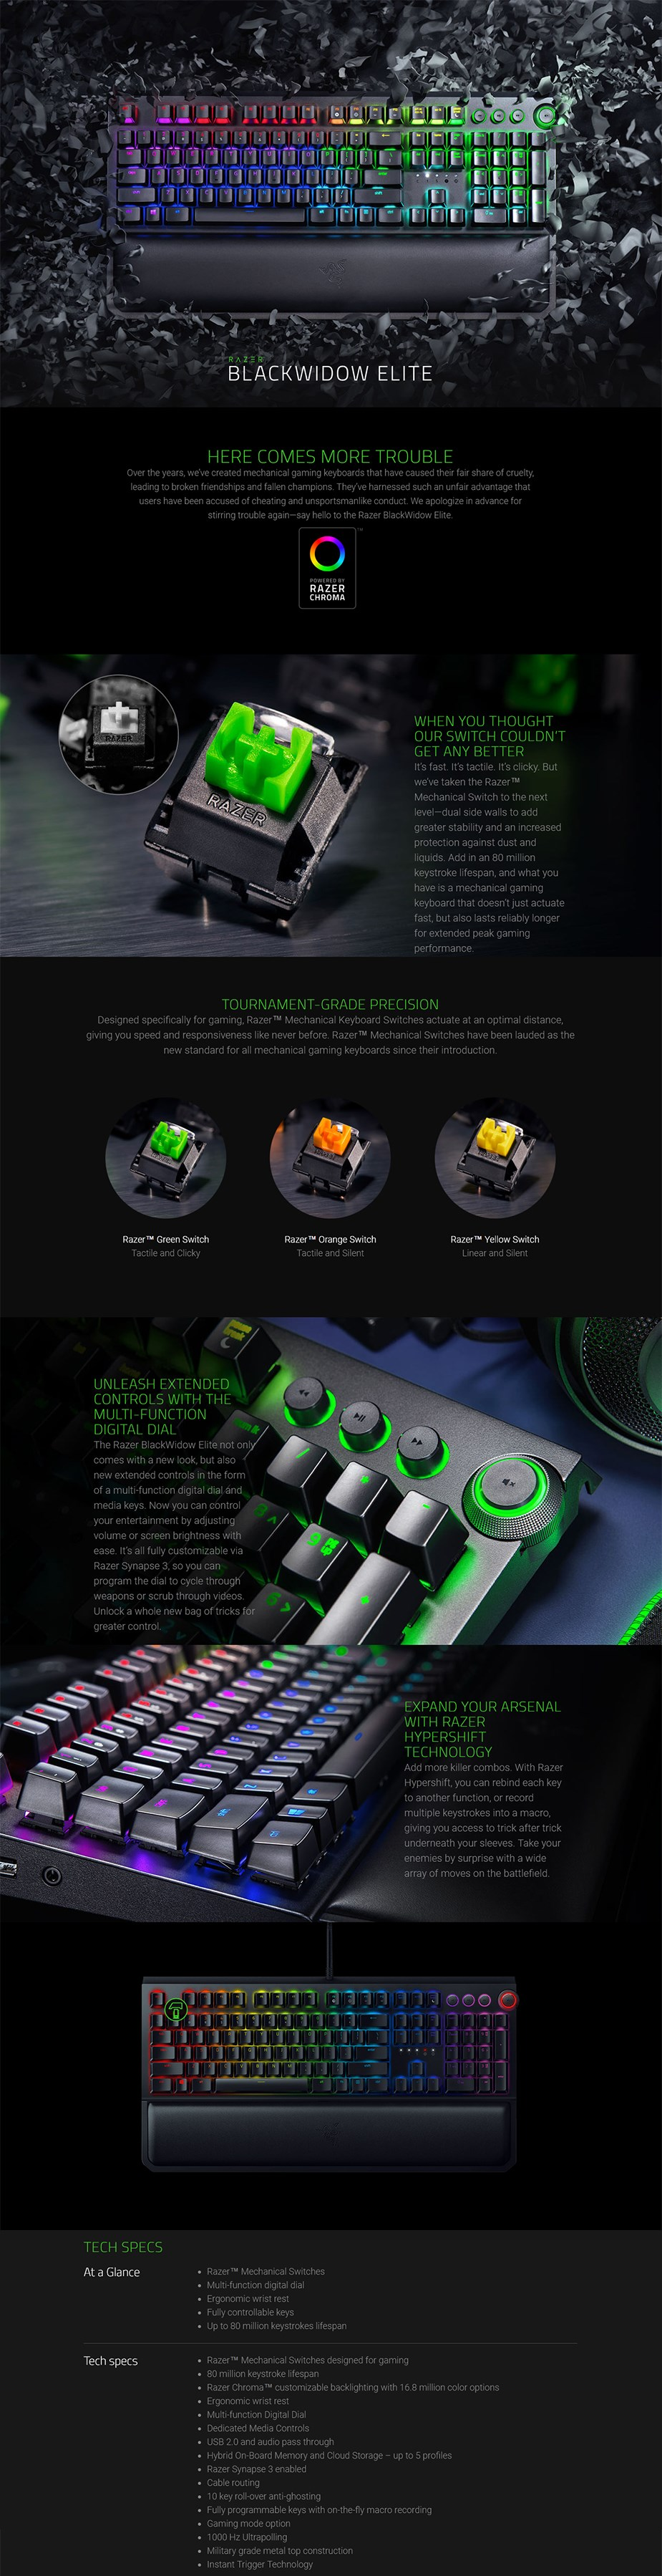 Razer BlackWidow Elite Mechanical Keyboard - Orange Switch - desktop overview